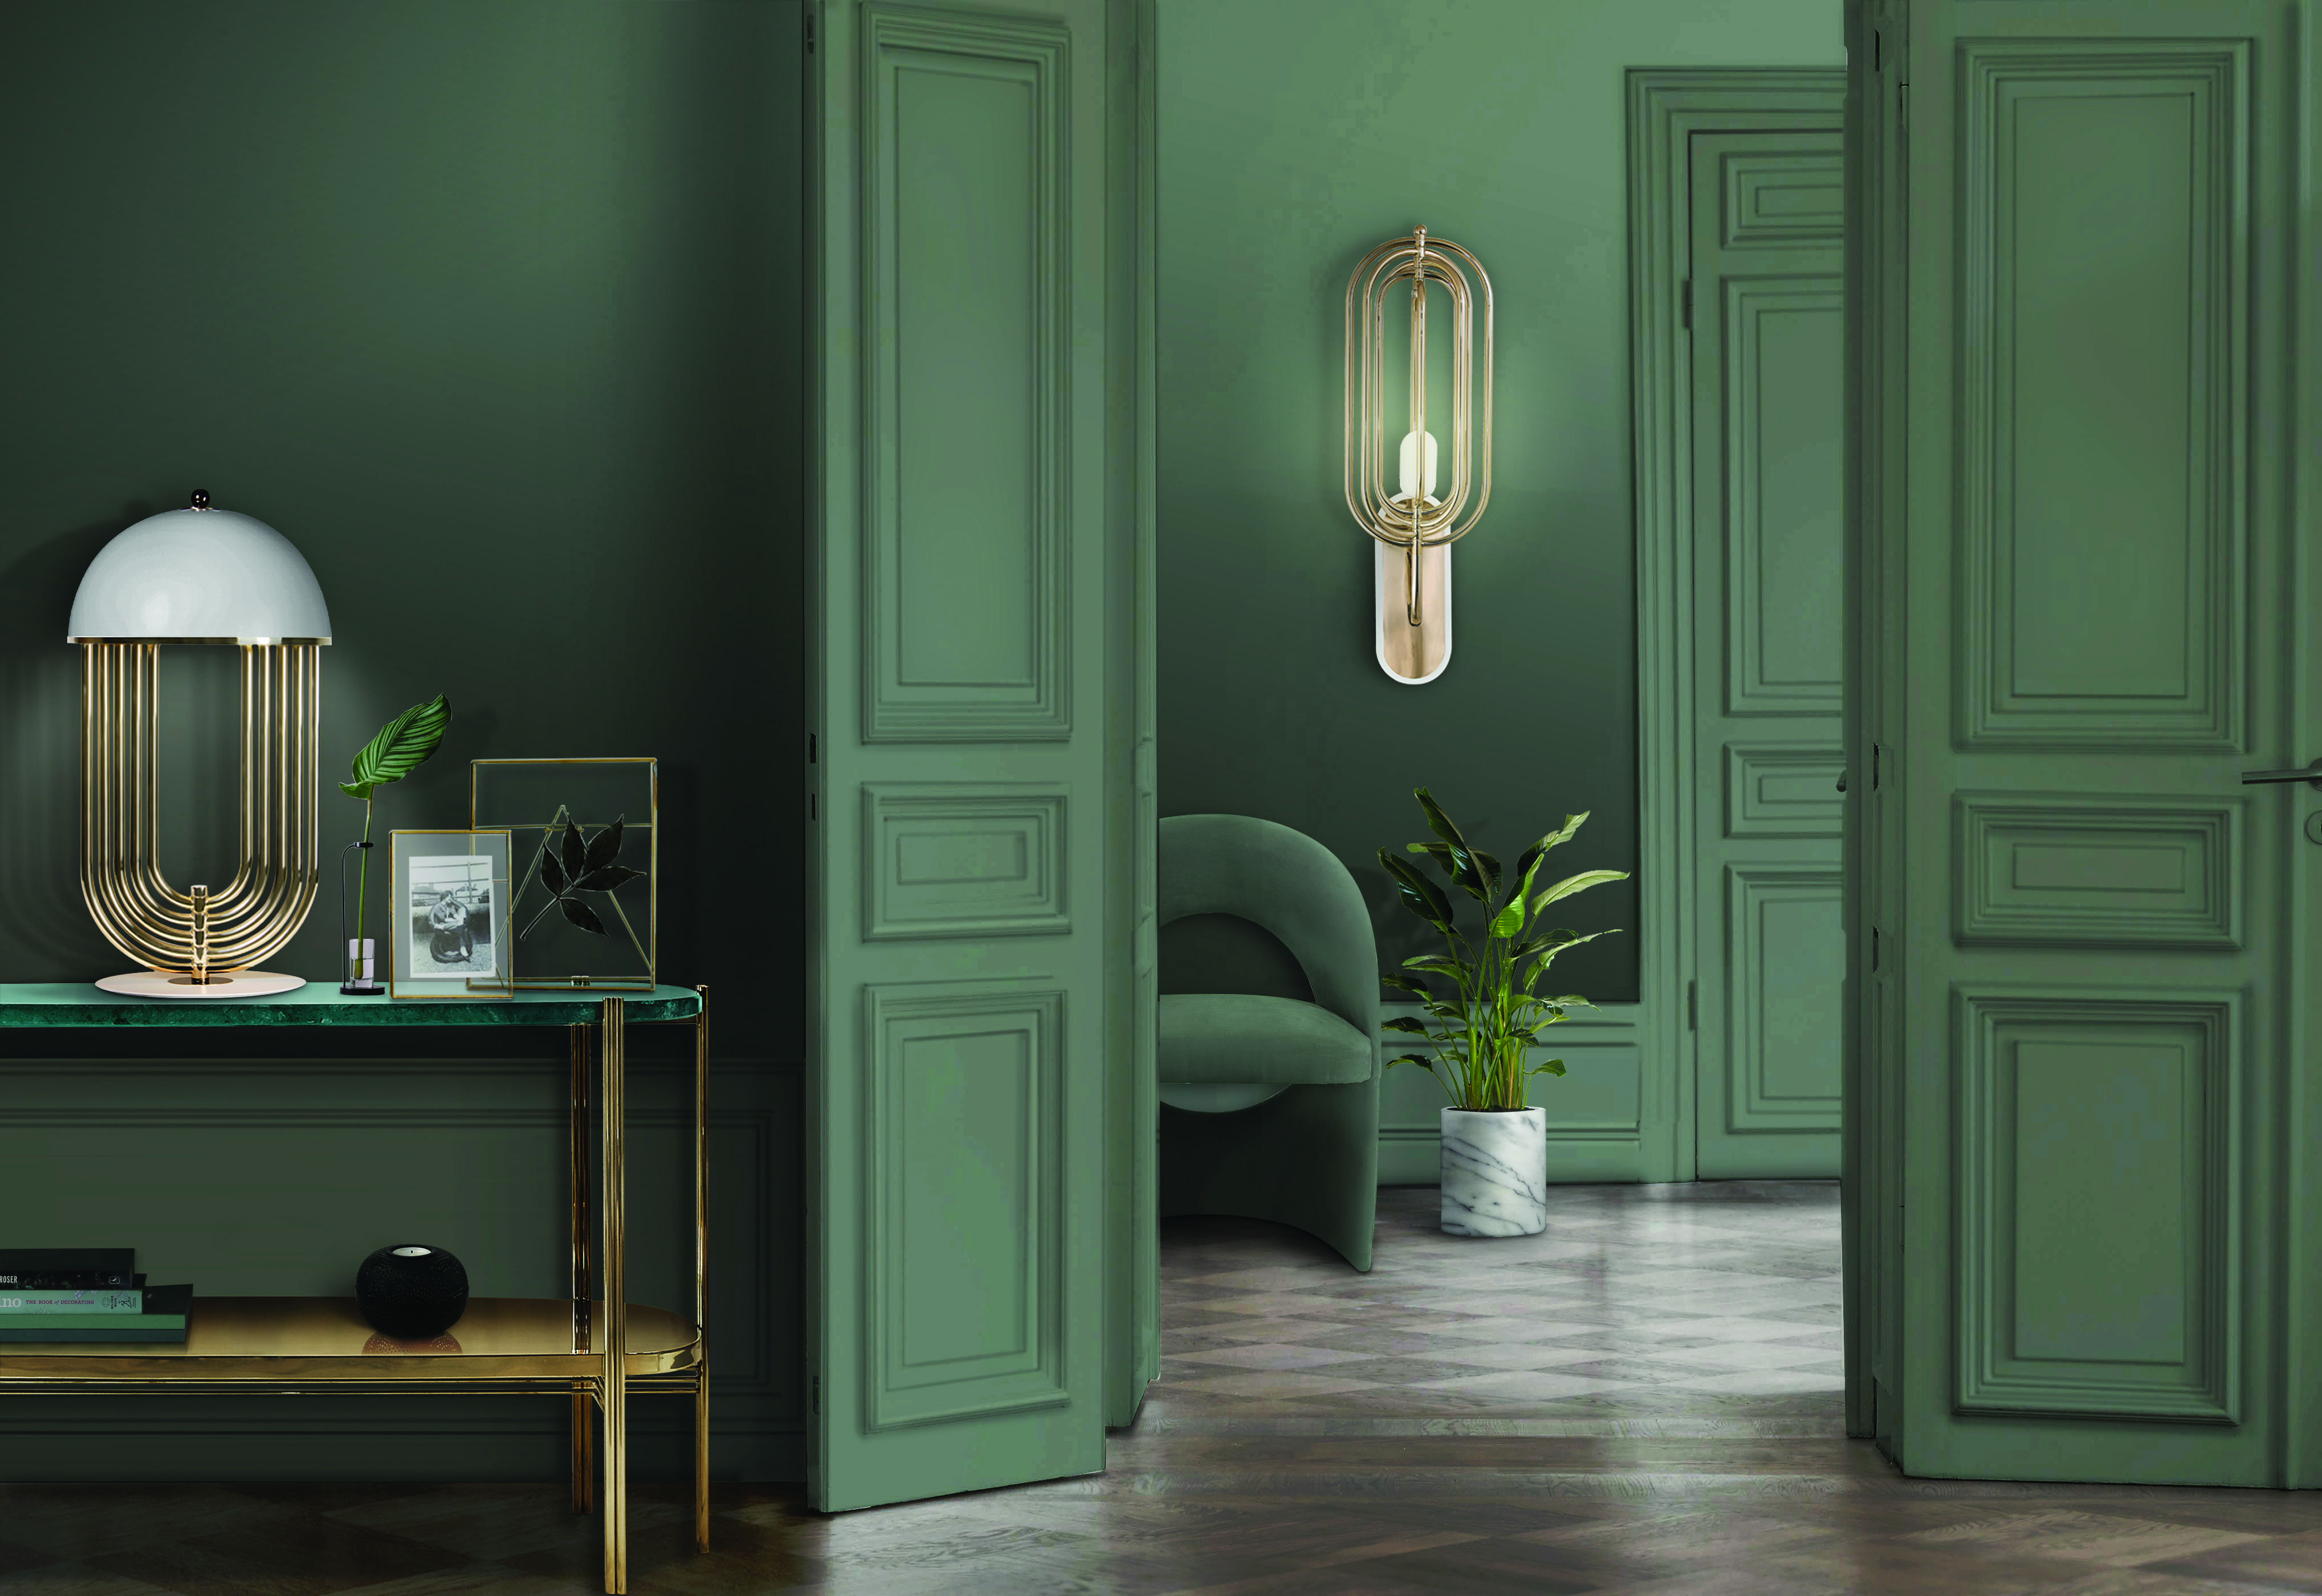 color trends 2018 color trends 2018 Top Color Trends 2018 for your Console Table Top Color Trends 2018 for your Console Table9